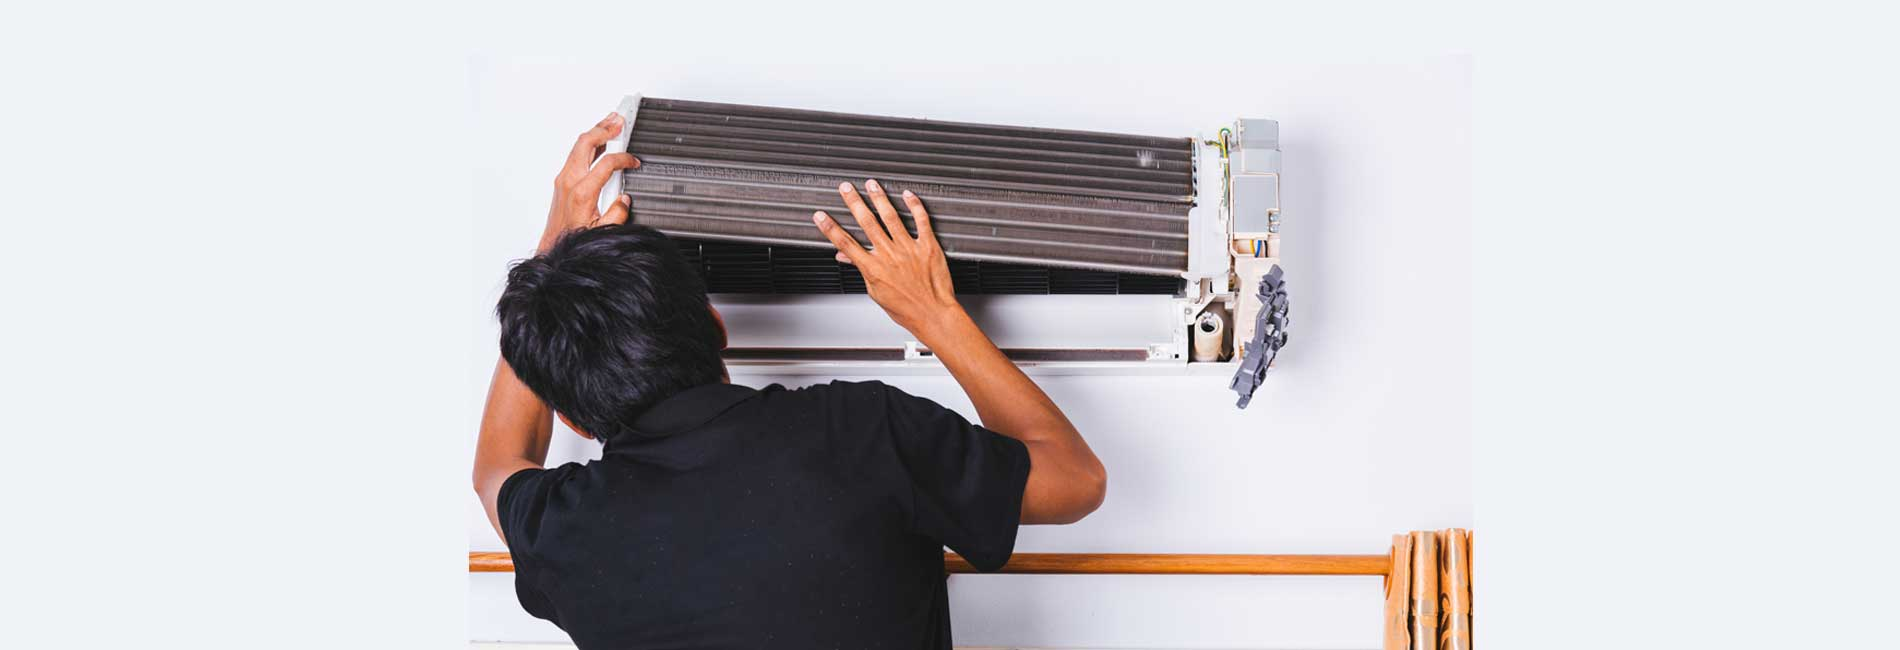 Split AC Uninstallation in Velappanchavadi